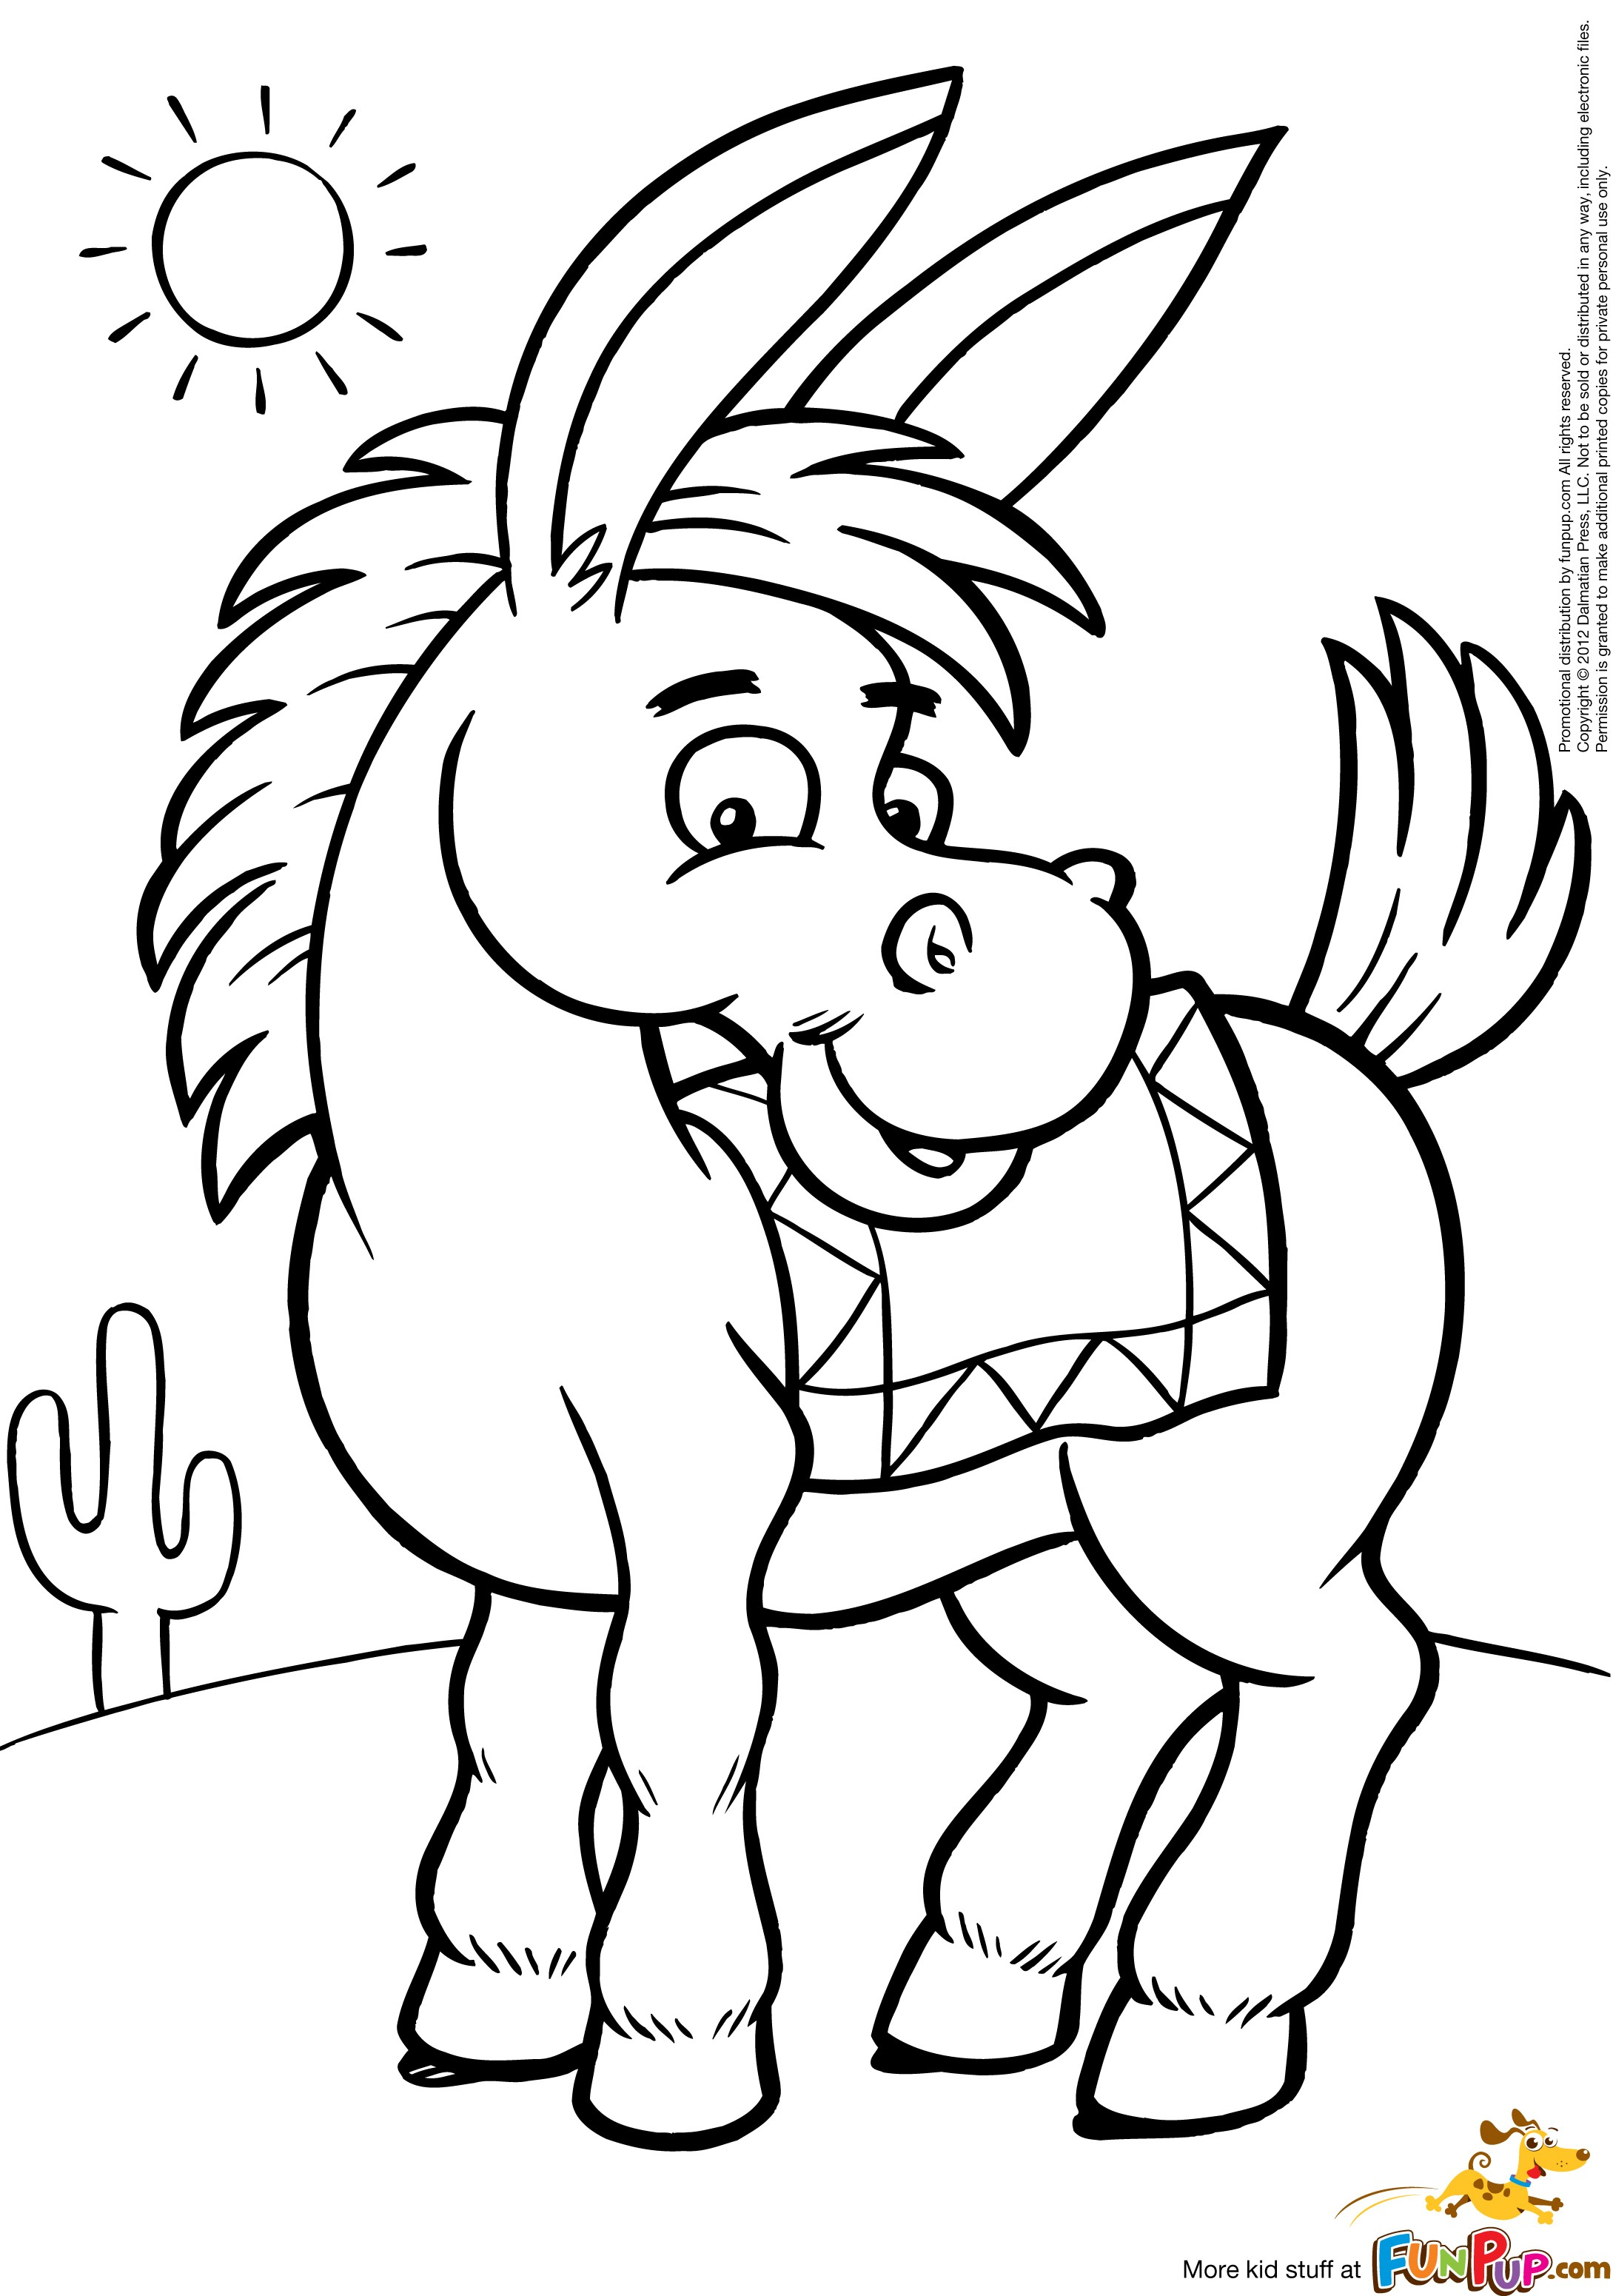 images for coloring for toddlers frozen coloring pages elsa face instant knowledge for images coloring for toddlers